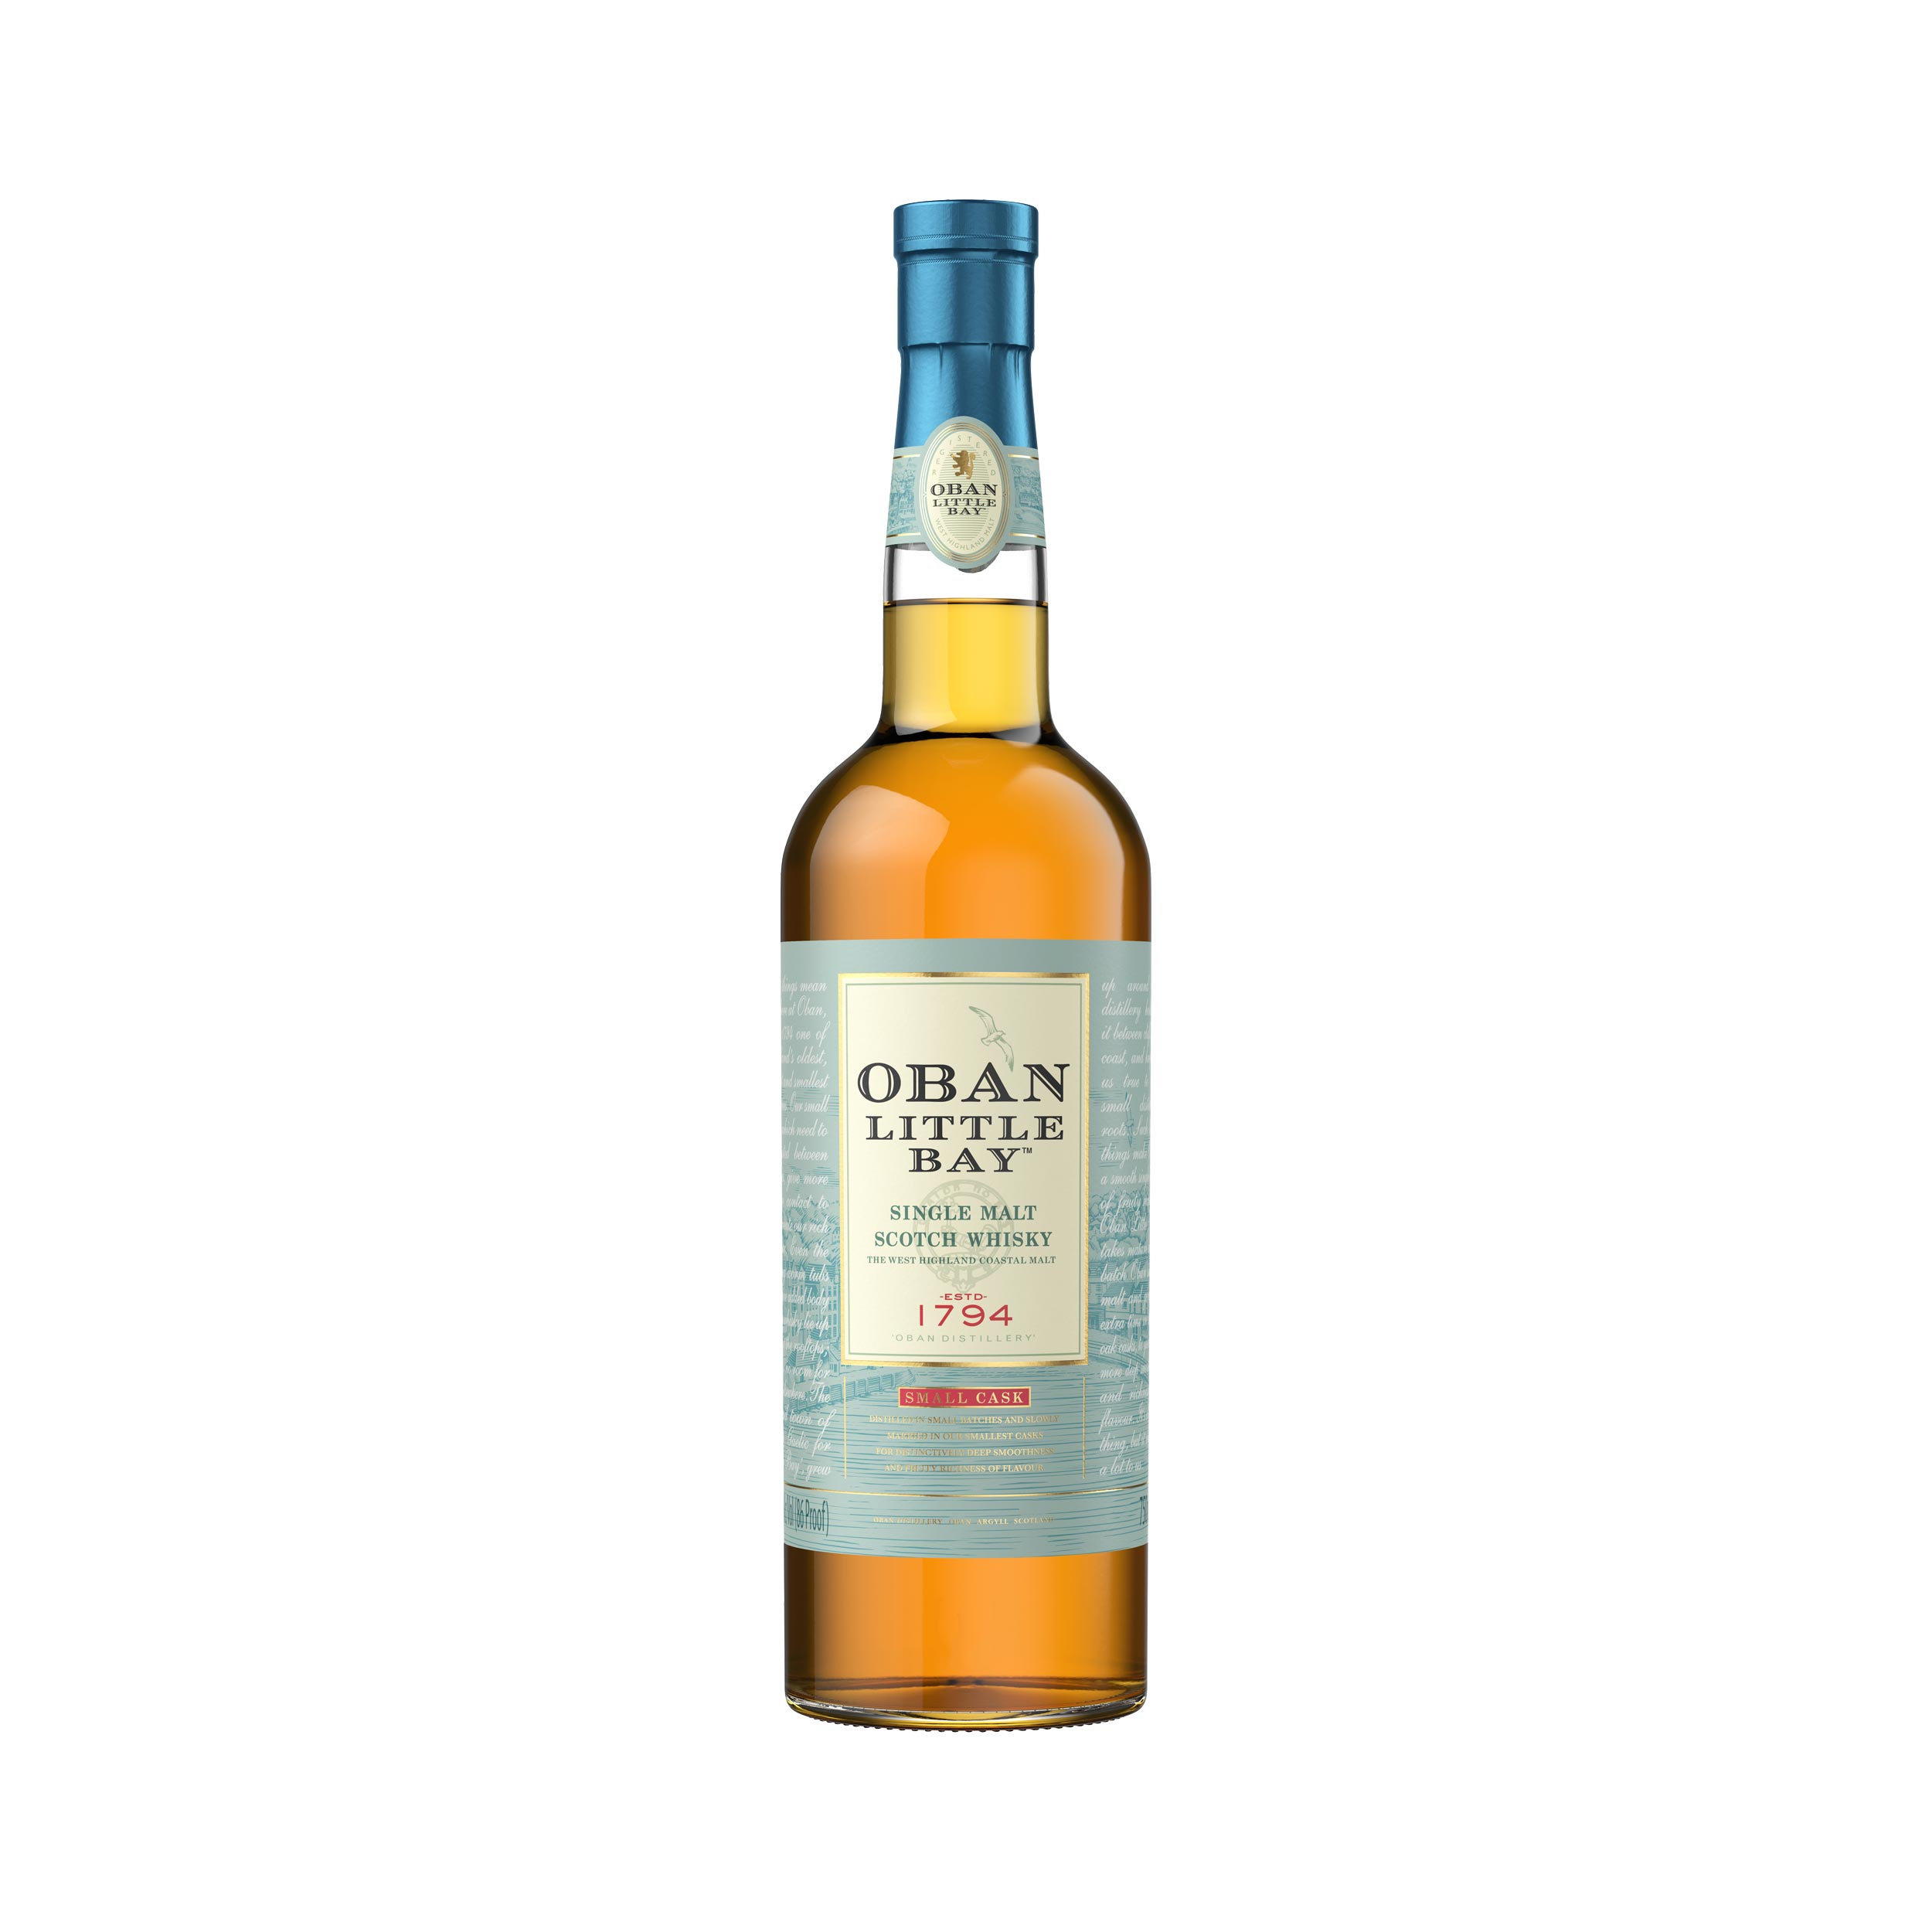 Oban Little Bay Highland Single Malt Scotch Whisky 70cl